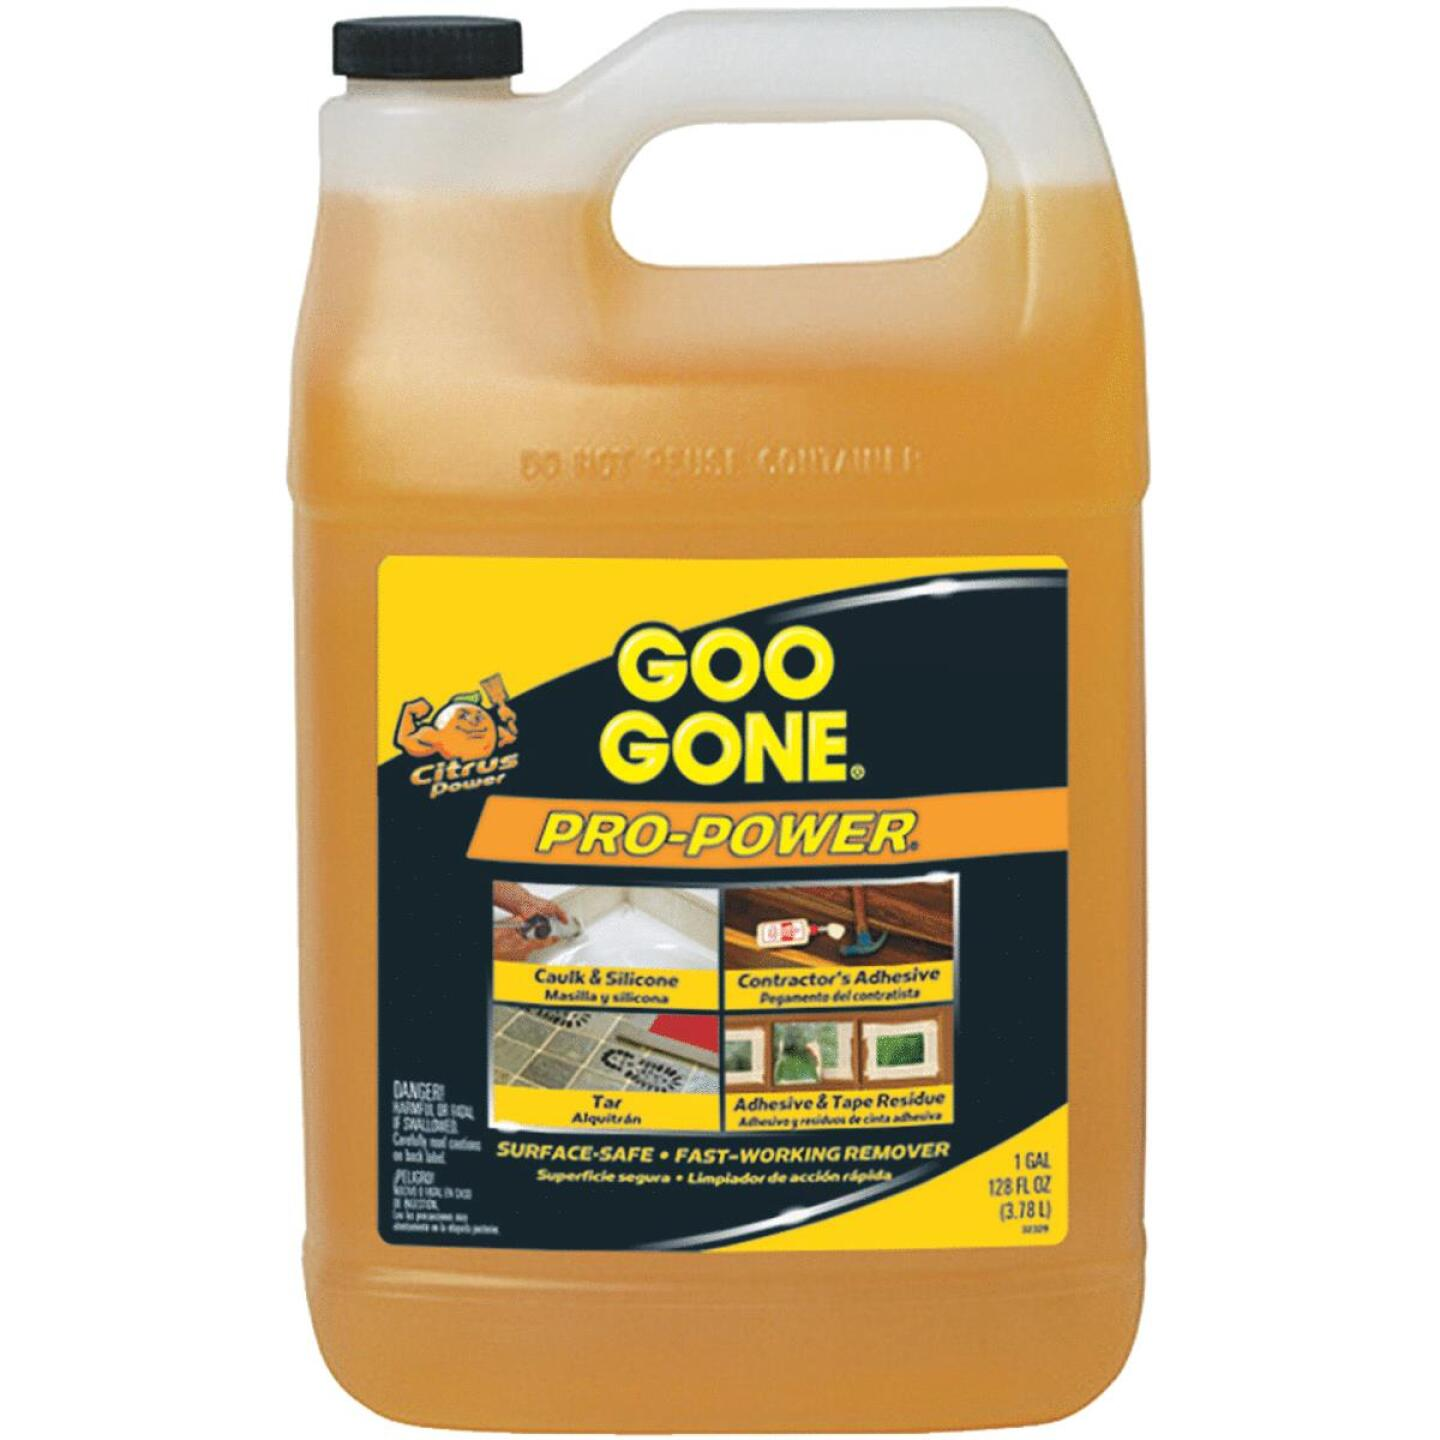 Goo Gone 1 Gal. Pro-Power Adhesive Remover Image 170